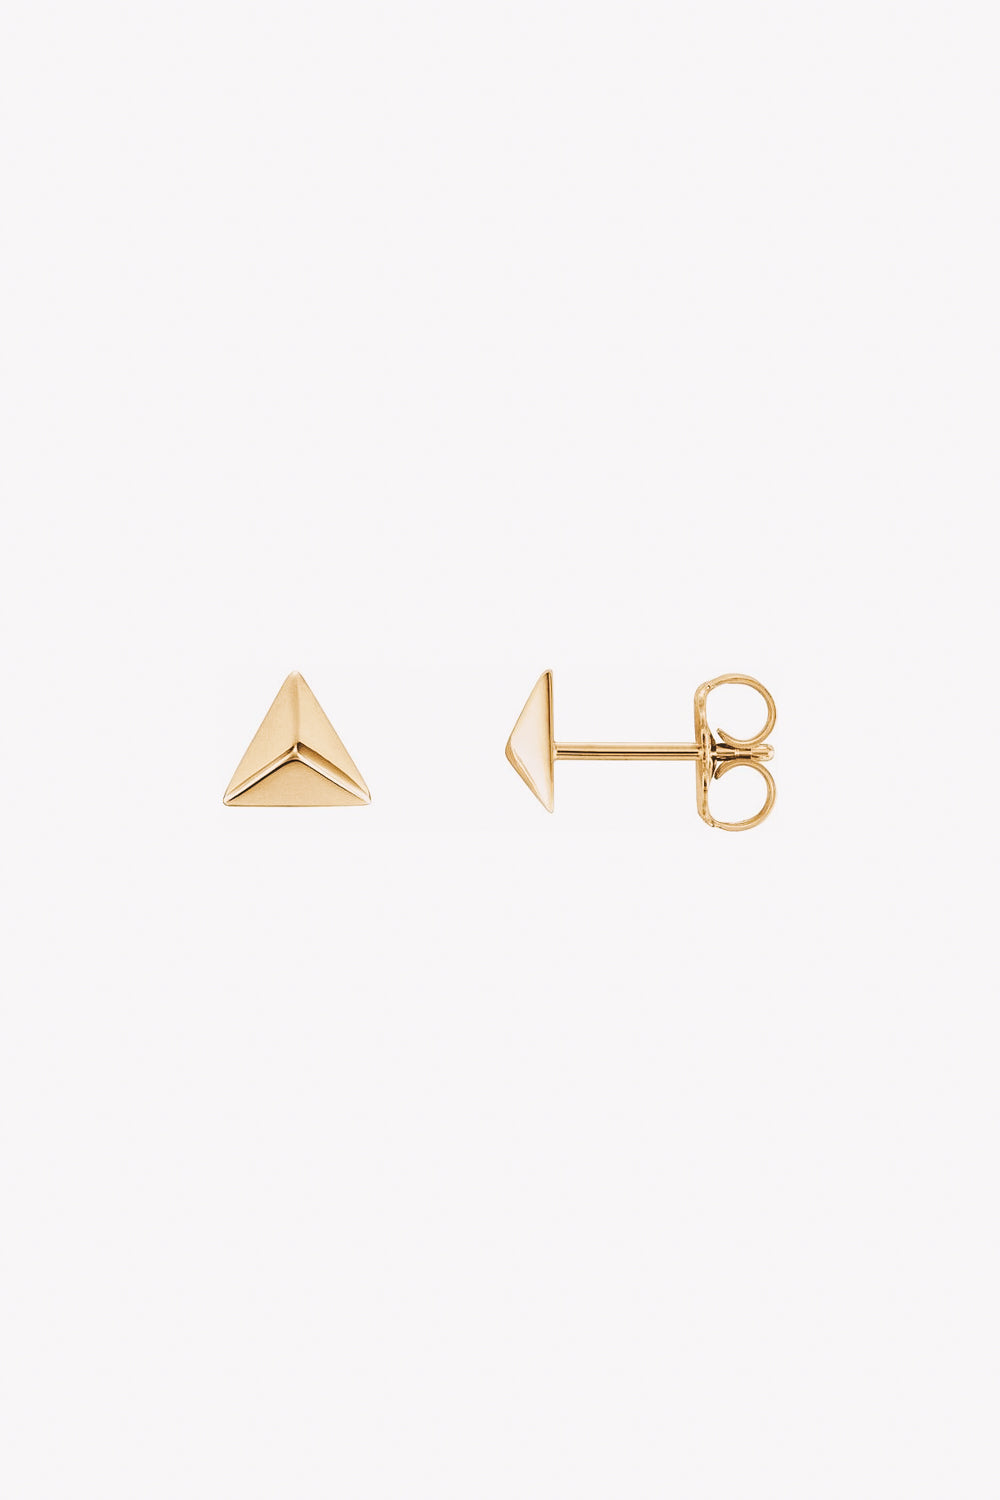 14k gold triangle pyramid stud earrings side view